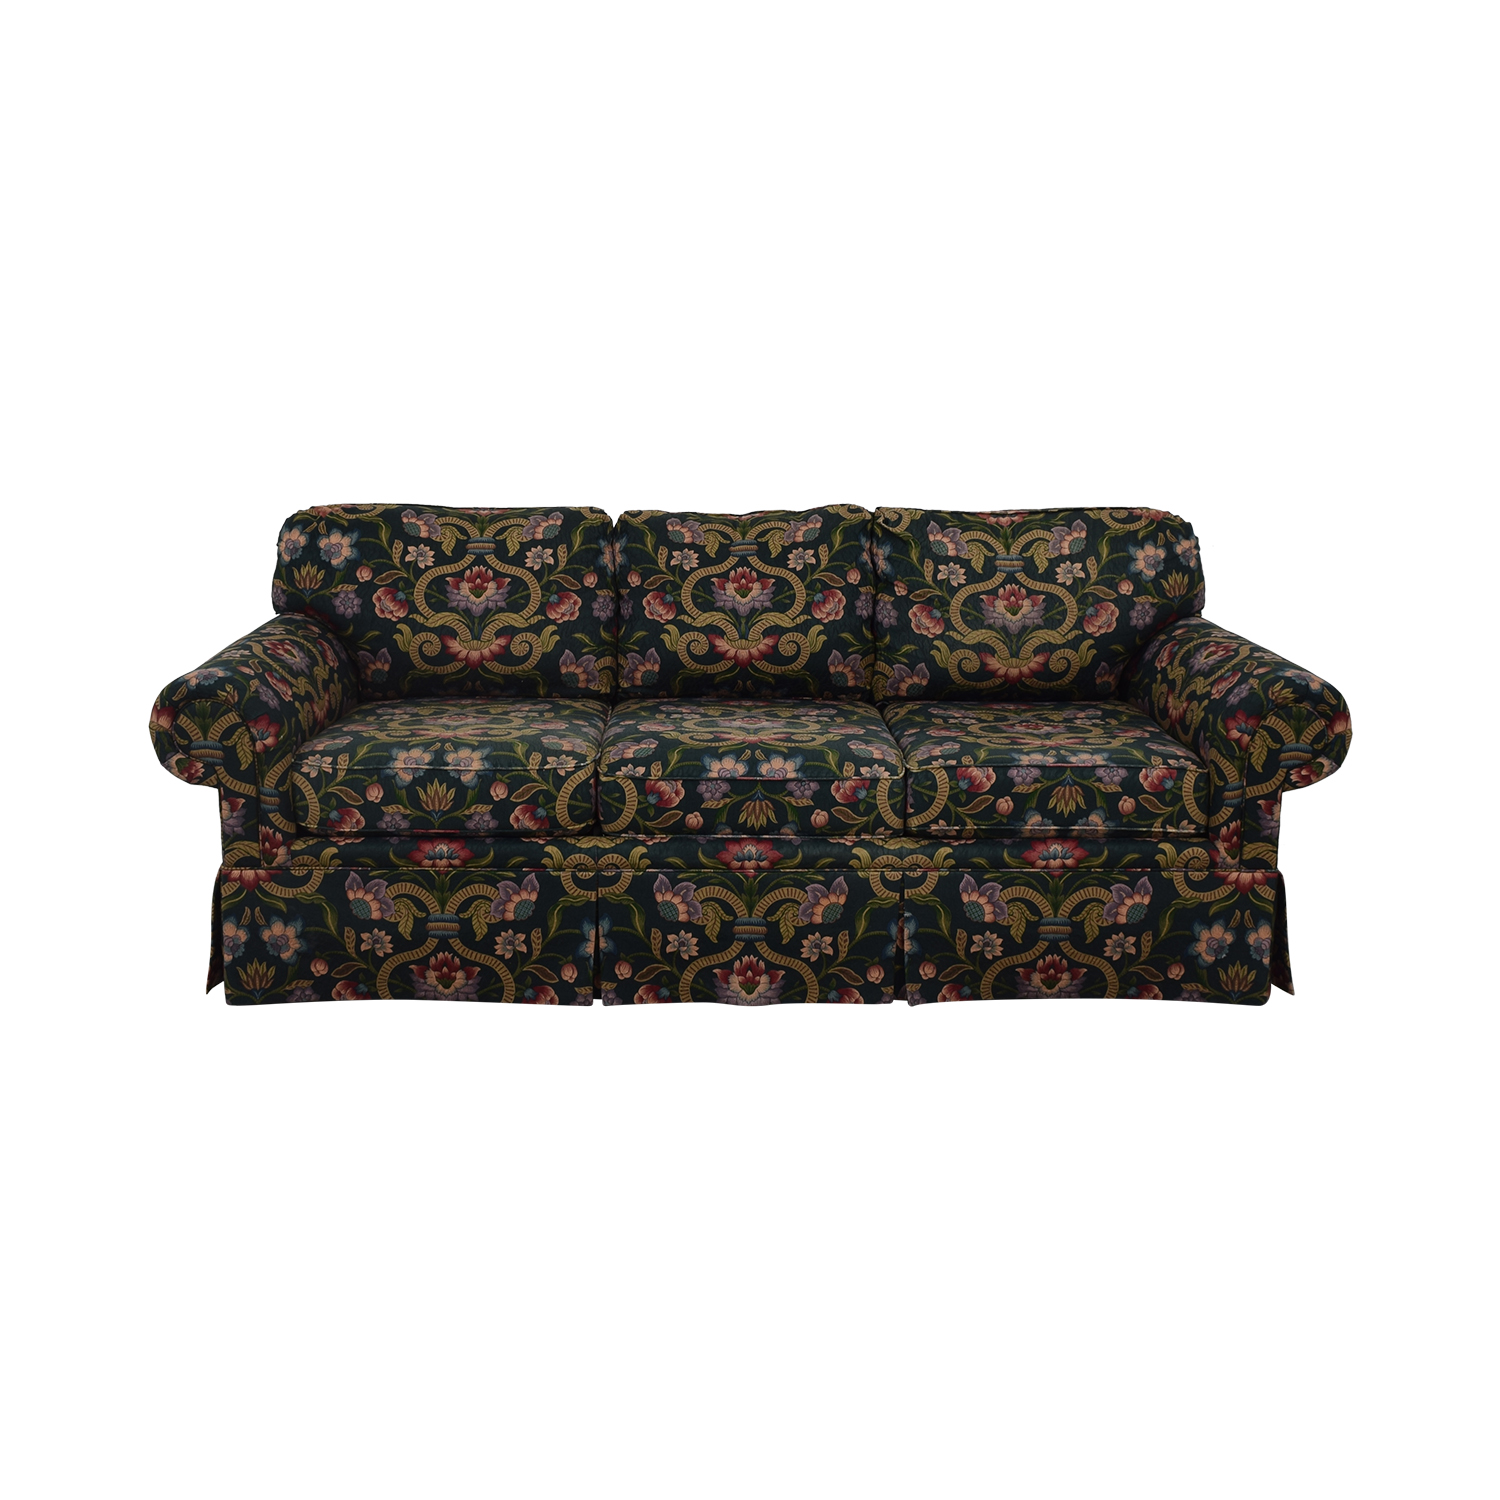 Vanguard Furniture Vanguard Furniture Floral Print Rolled Arm Sofa used